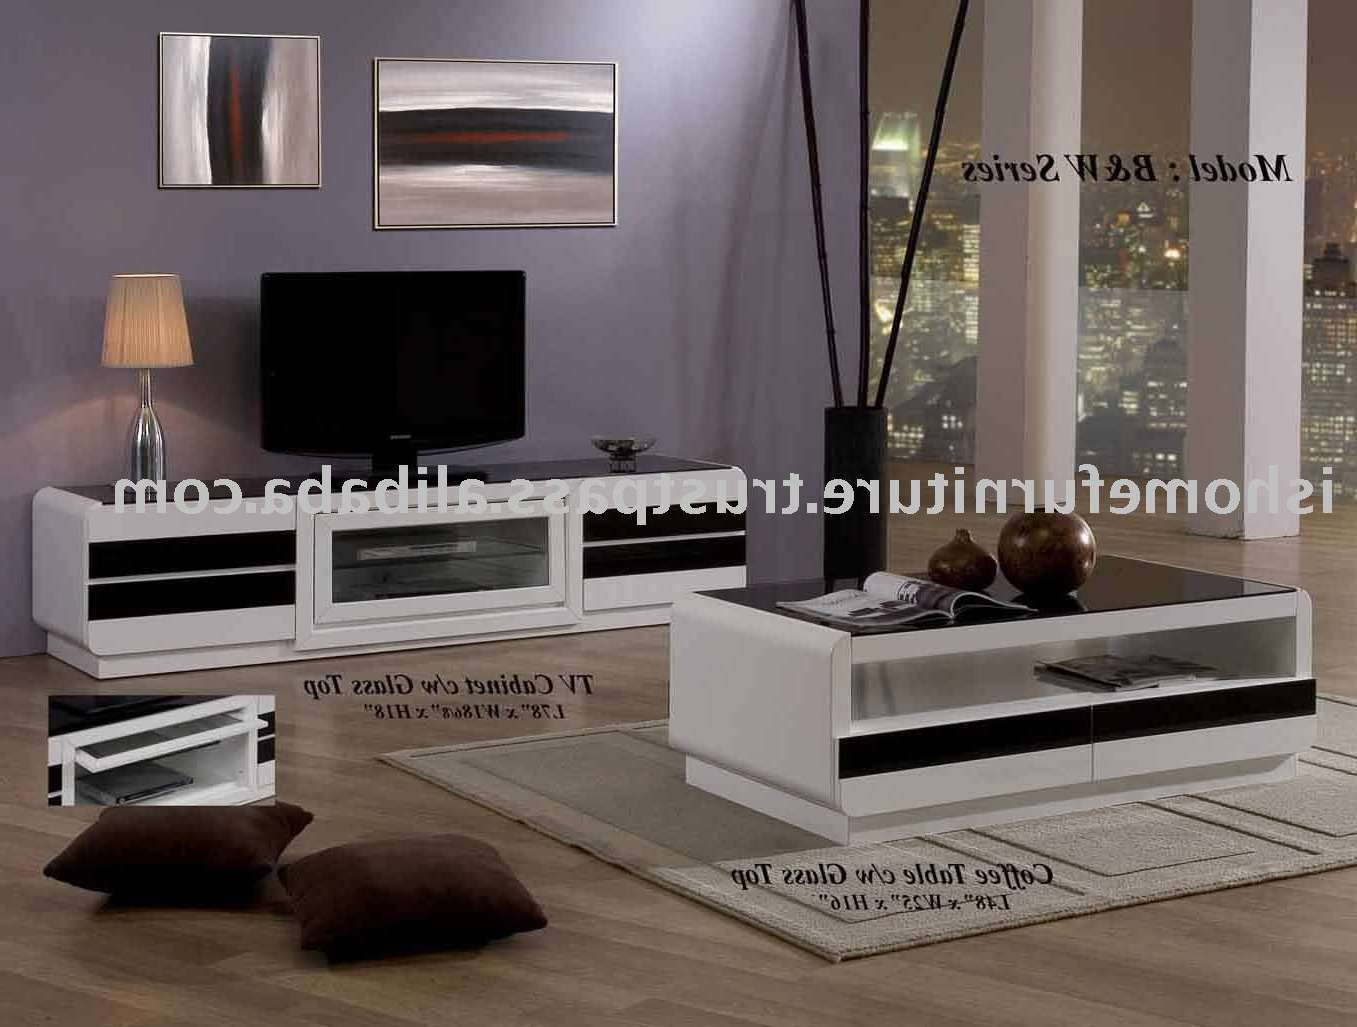 B&w Series – Coffee Table,tv Stand – Buy Home Furniture,coffee With Regard To Coffee Tables And Tv Stands (View 1 of 20)